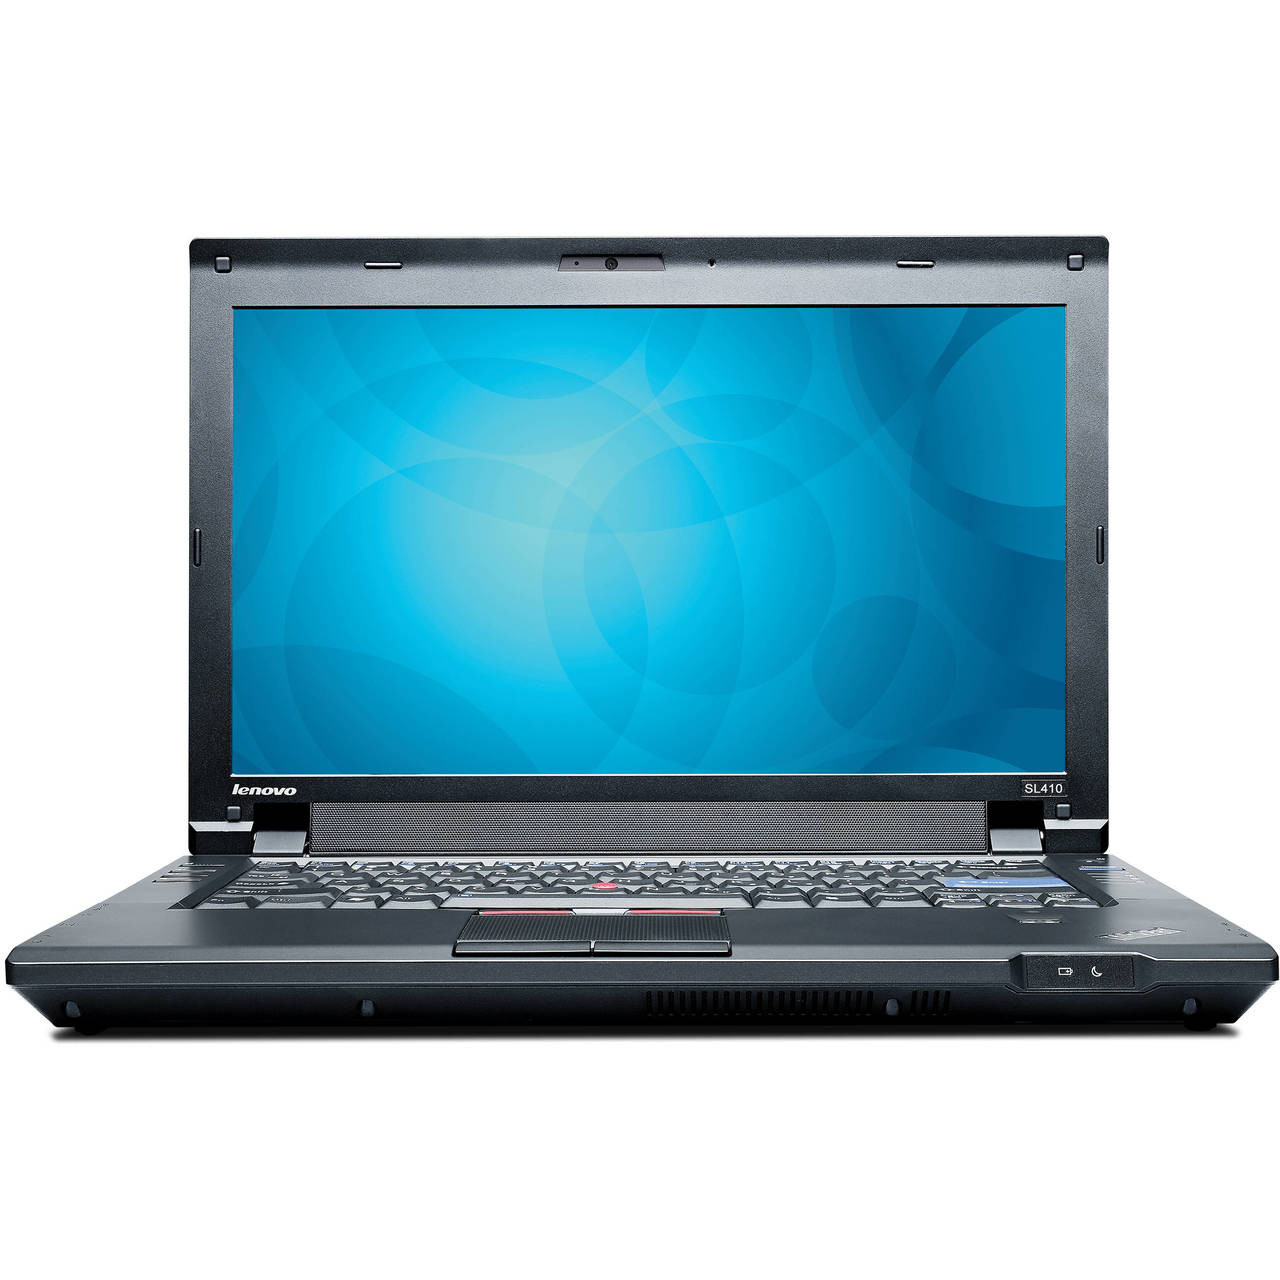 Lenovo Thinkpad SL410 - Front Display View